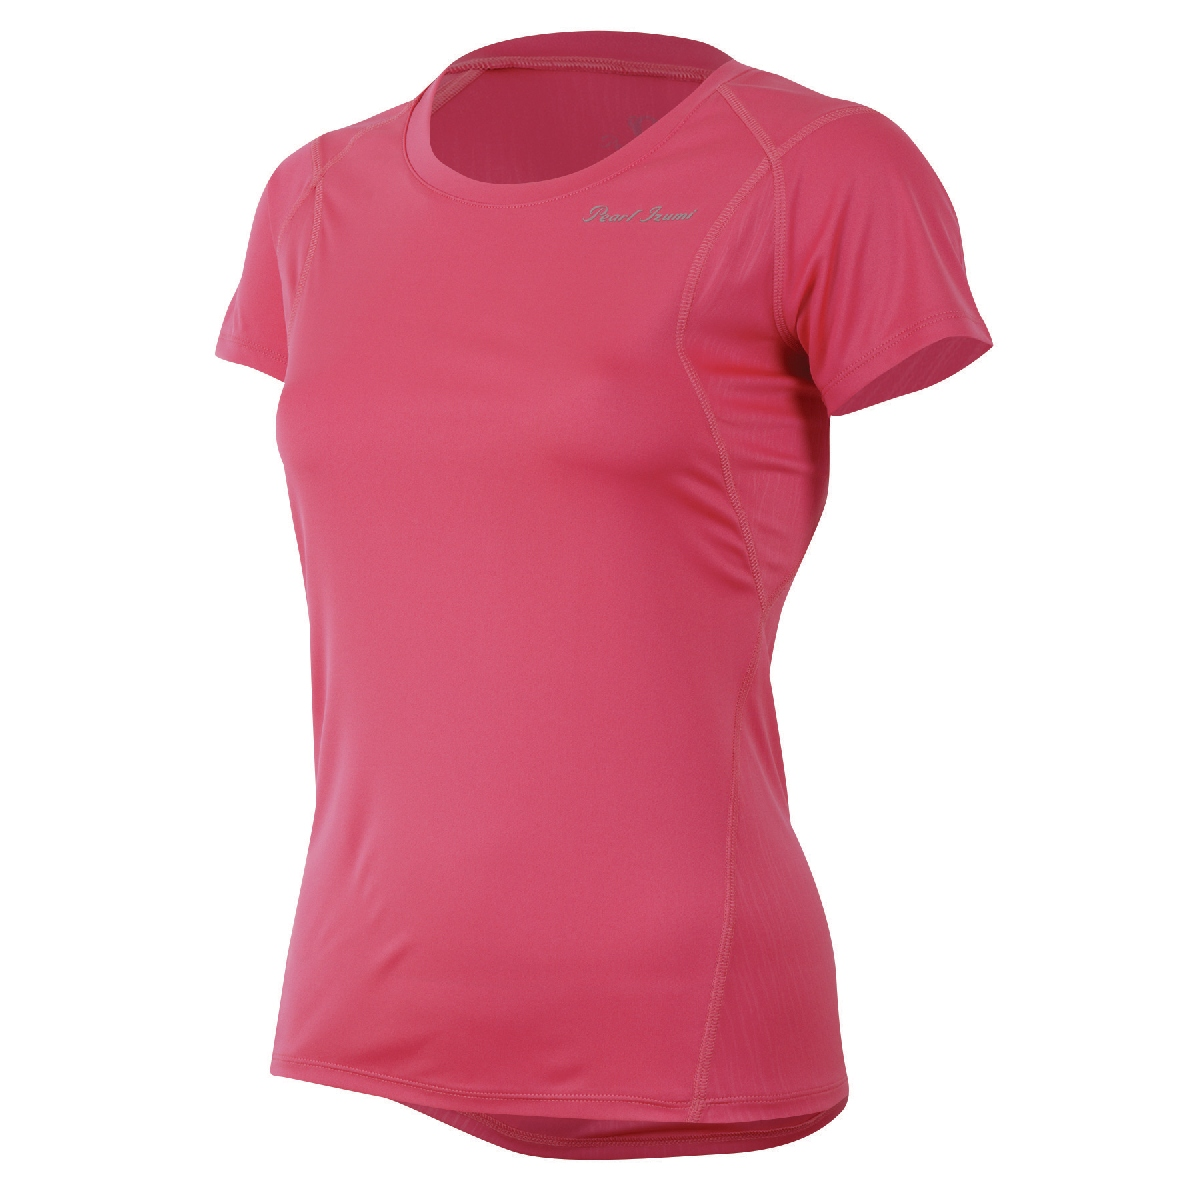 Pearl Izumi Fly Short Sleeve Running Top Women's Size L Honeysuckle U.S.A. & Canada